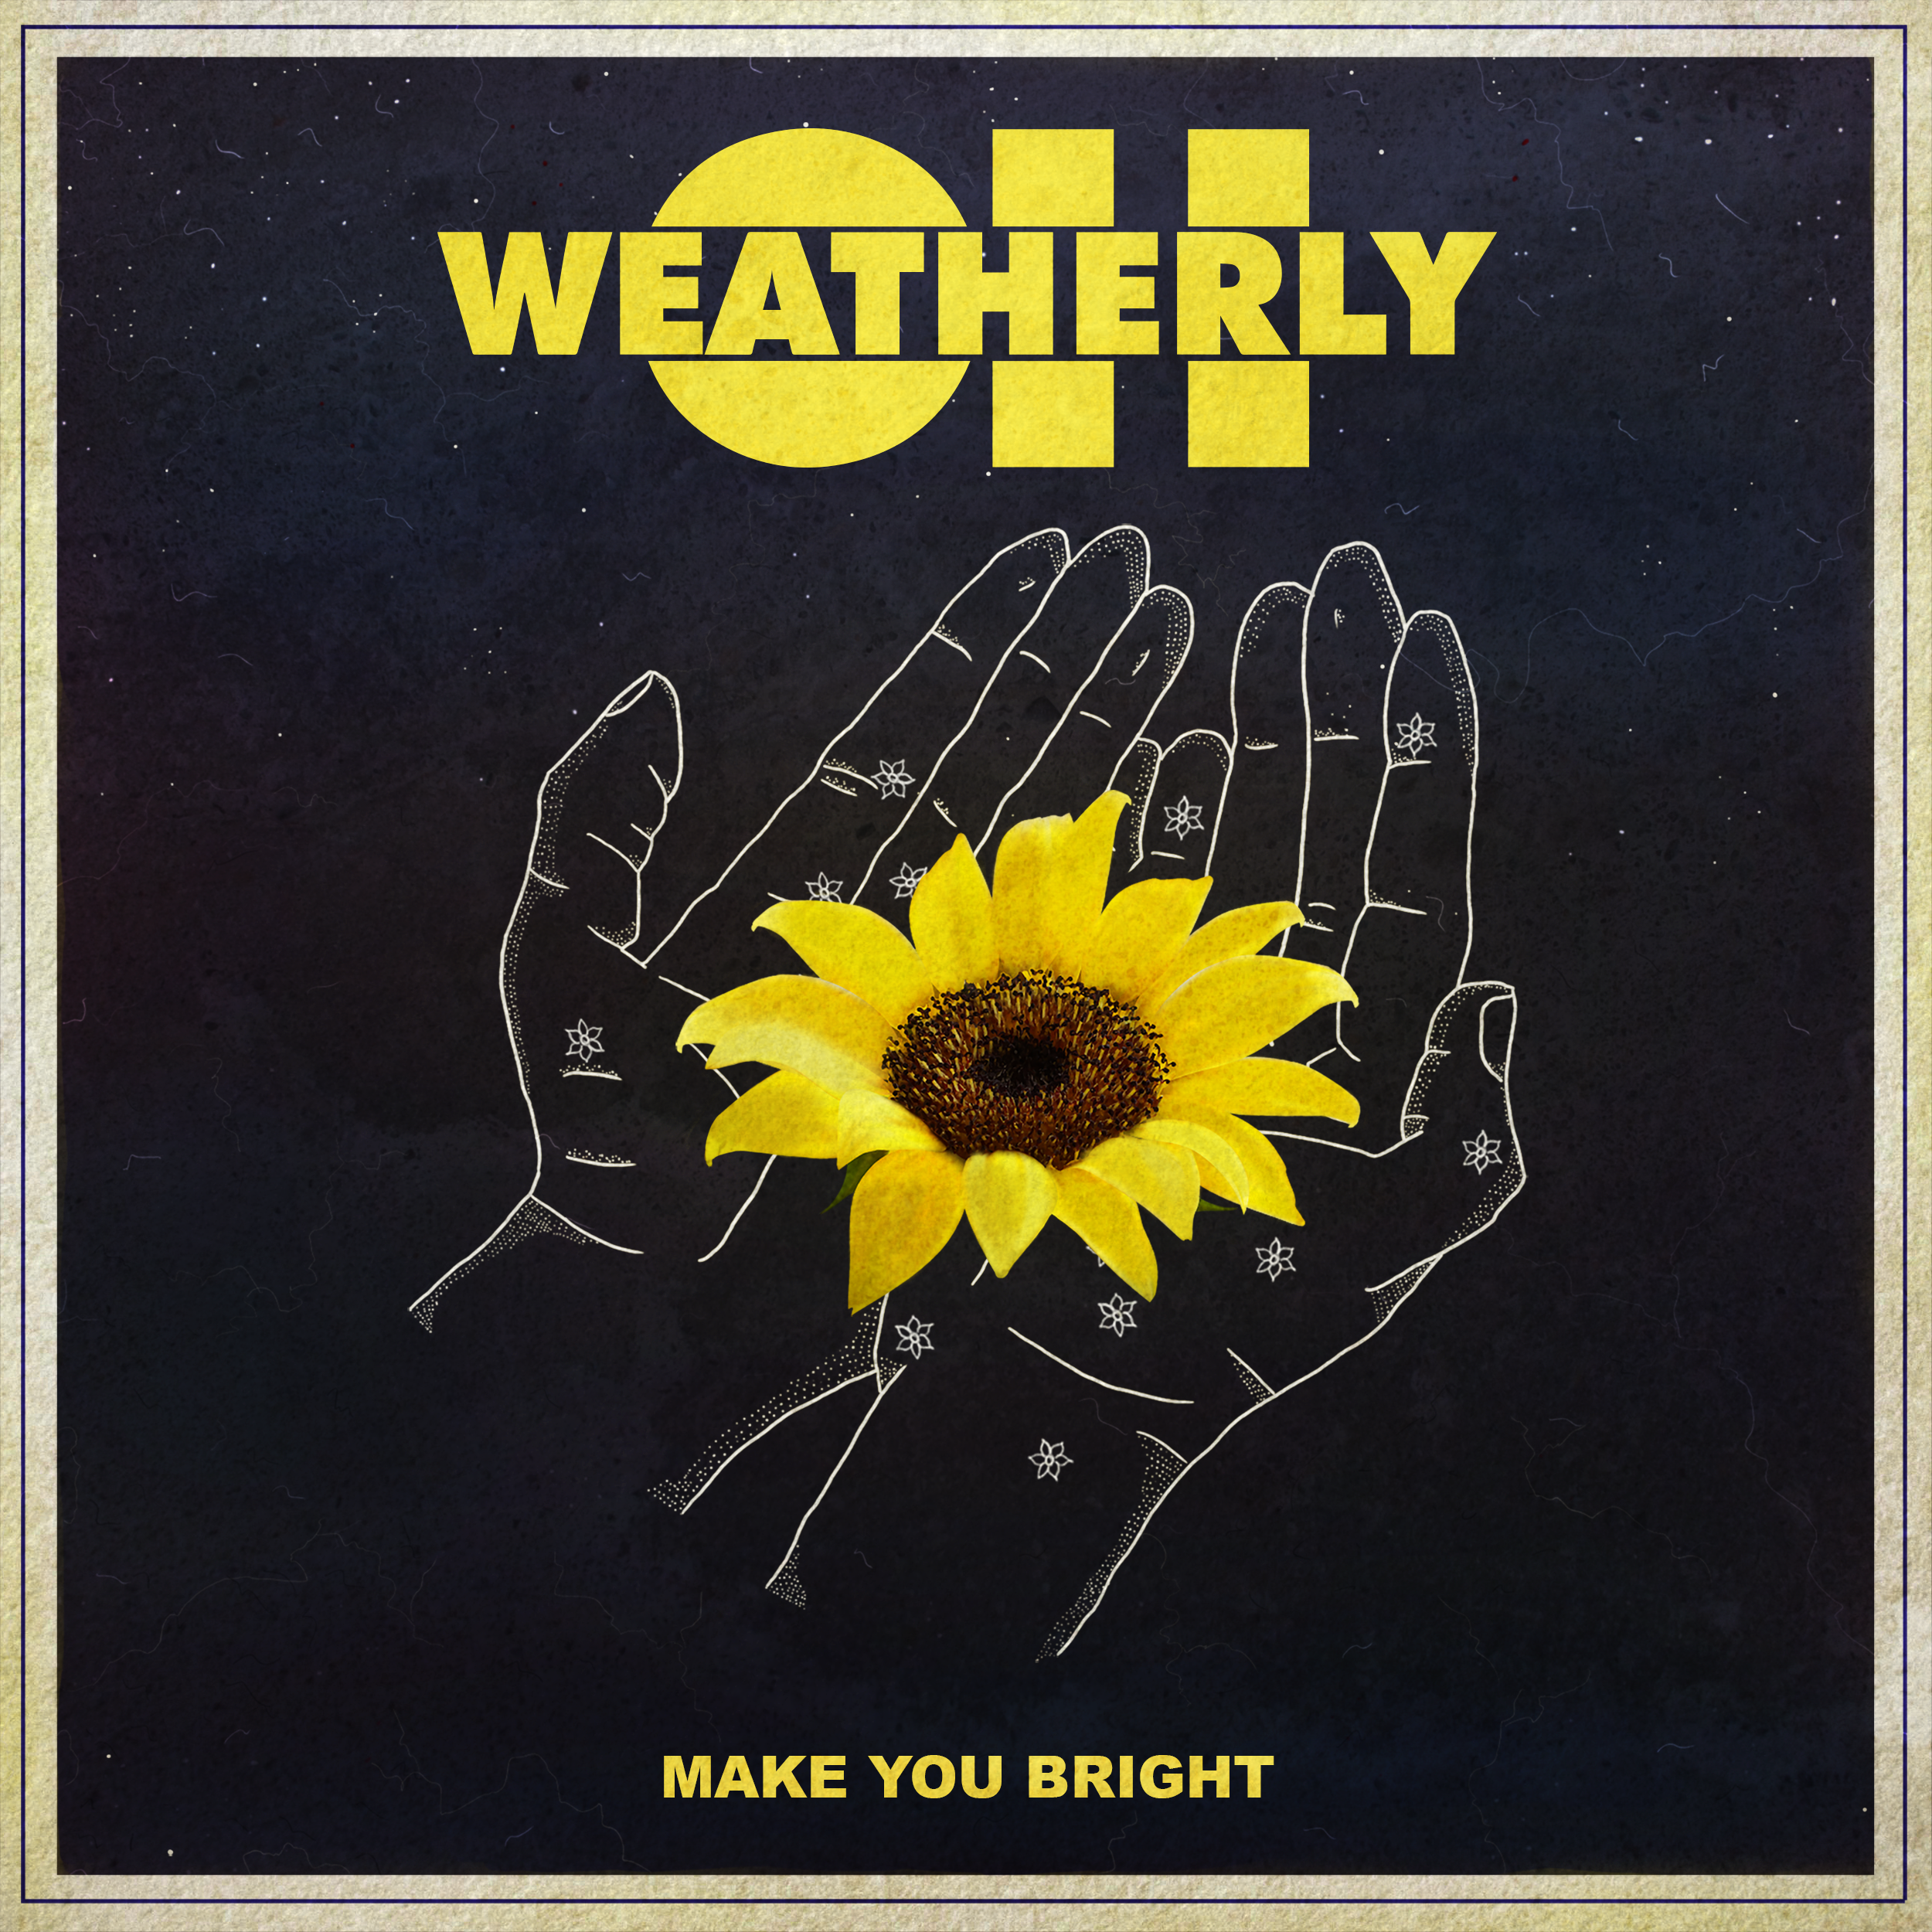 Oh Weatherly - Make You Bright